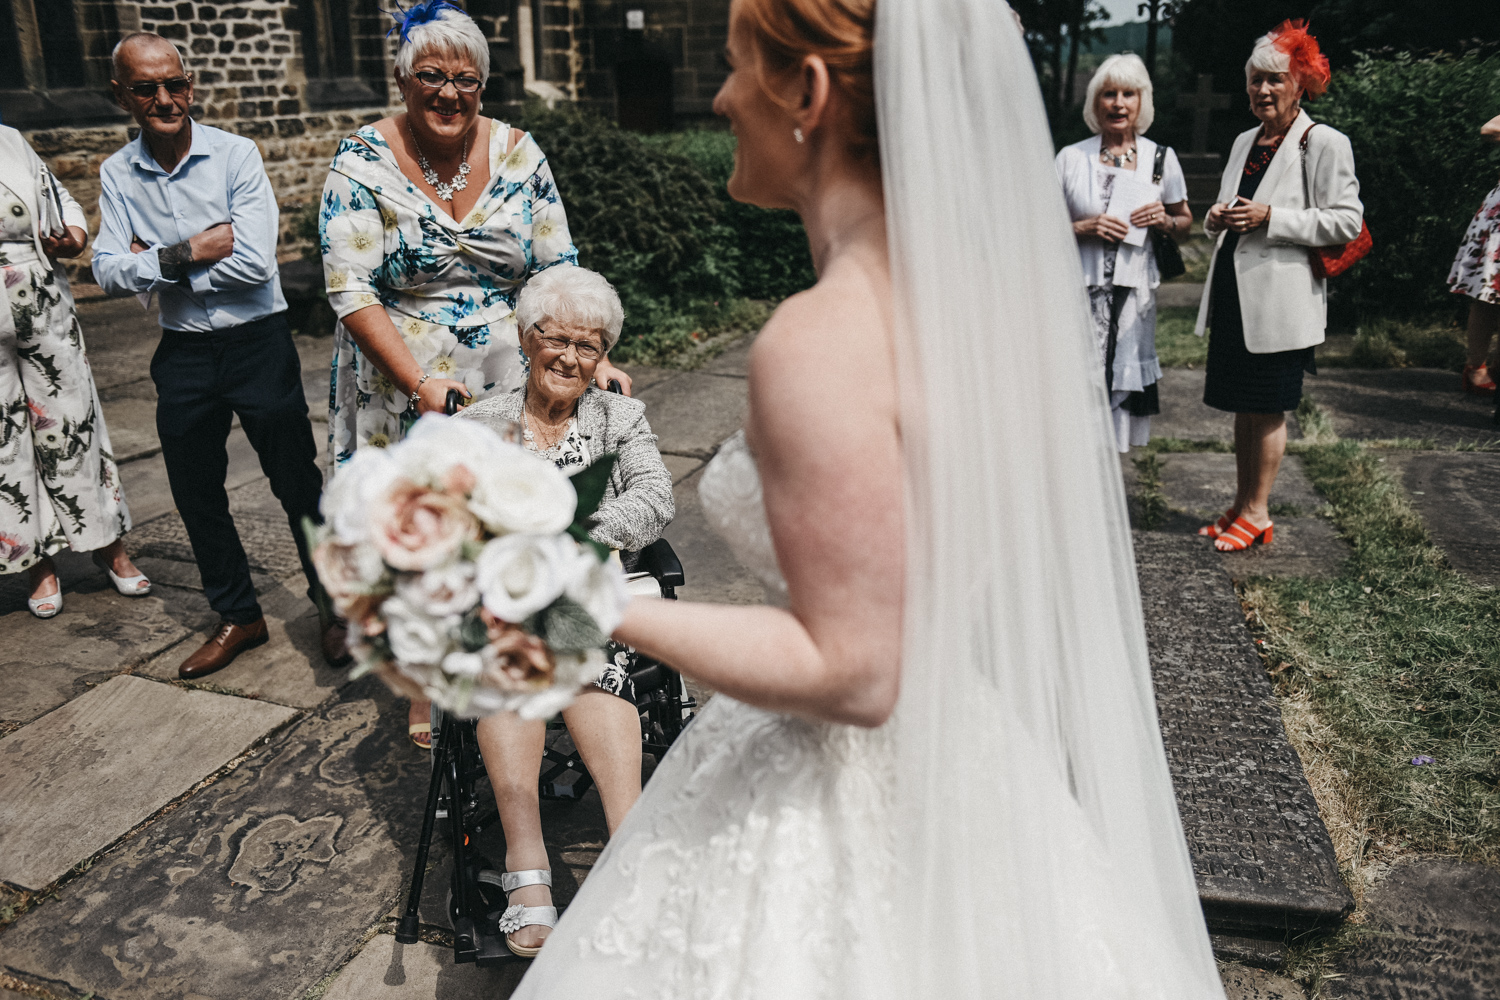 Old lady congratulating the bride